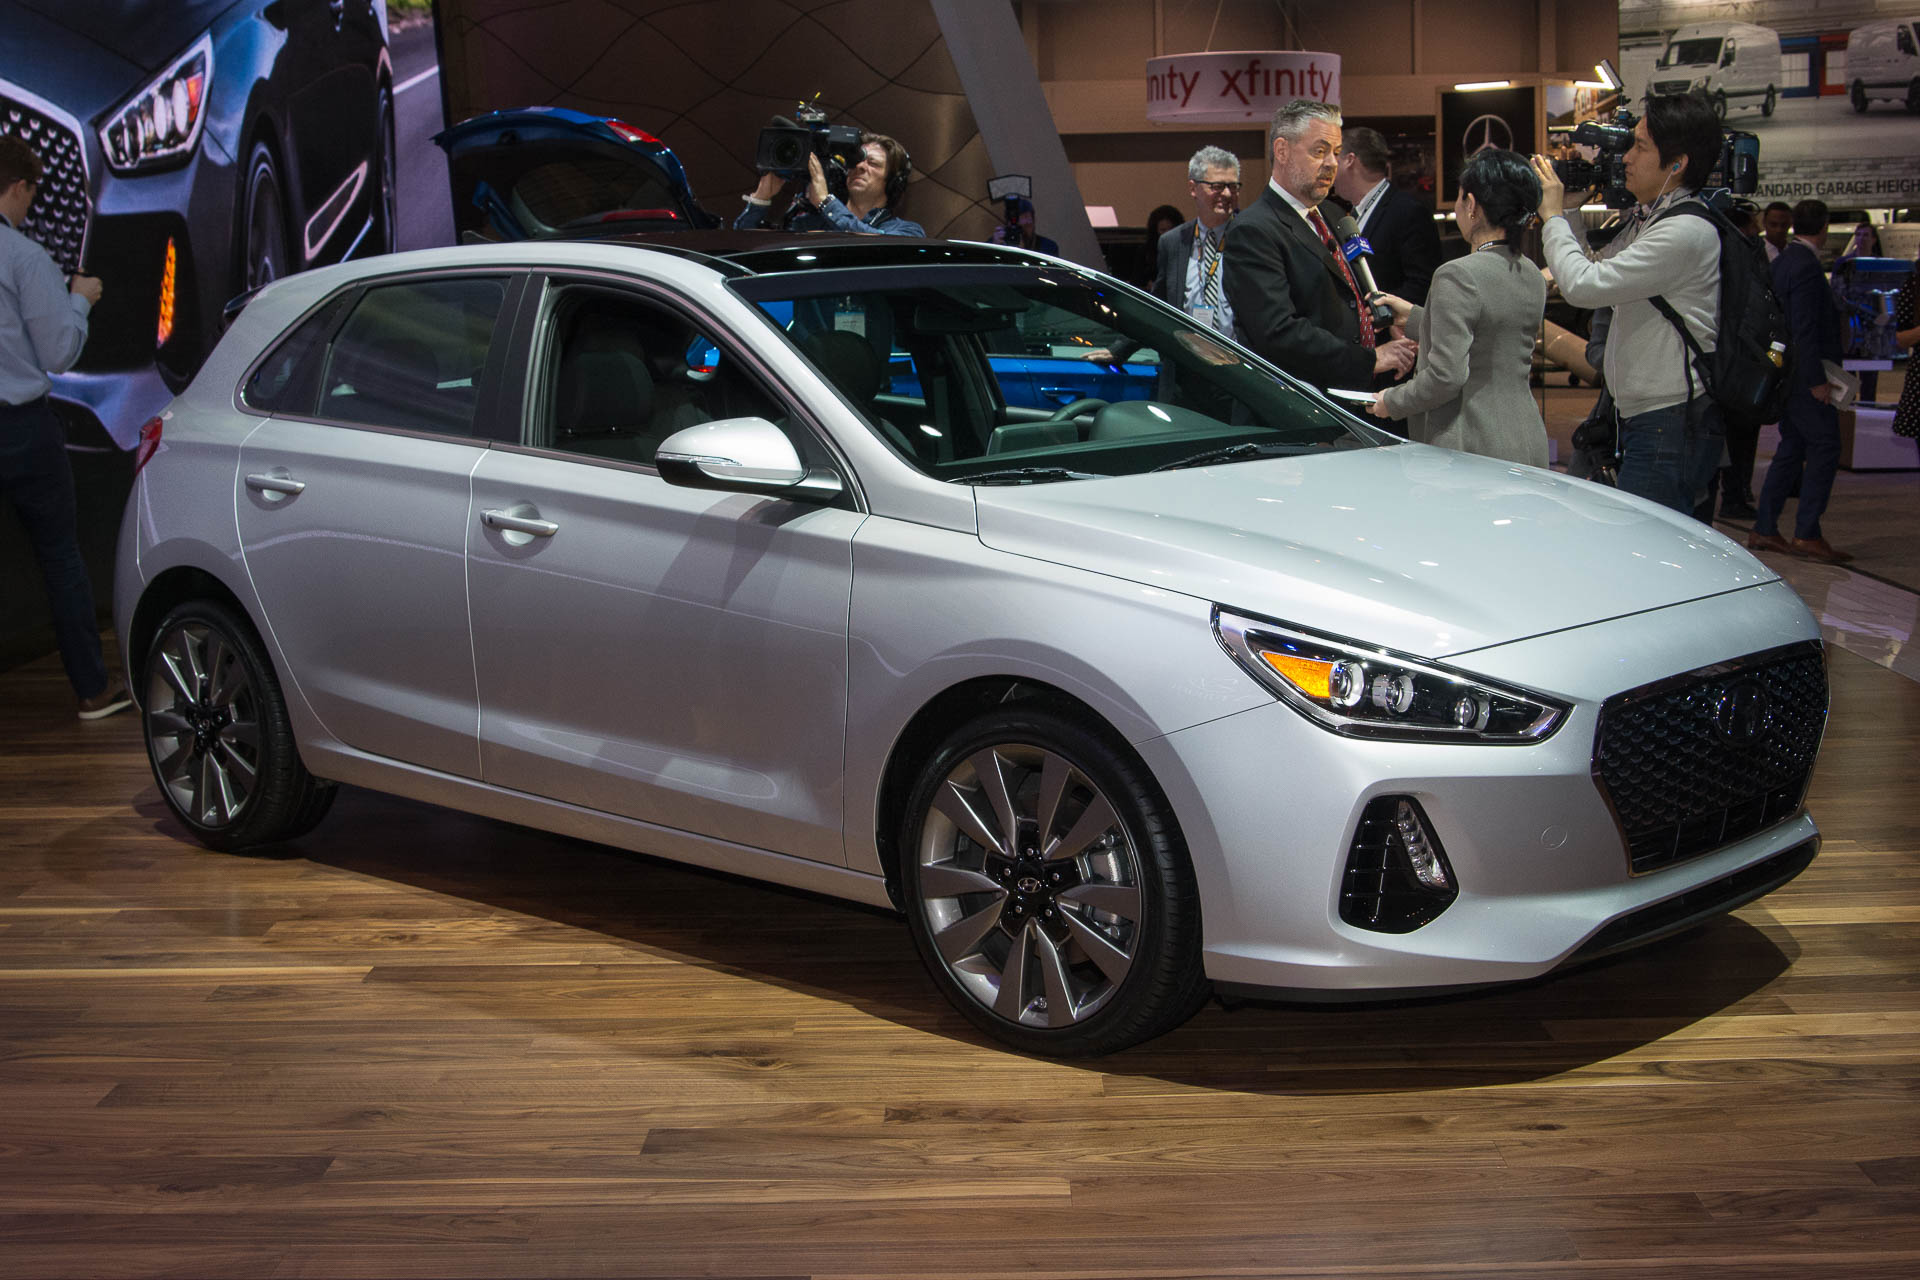 2018 hyundai elantra gt. interesting elantra with 2018 hyundai elantra gt